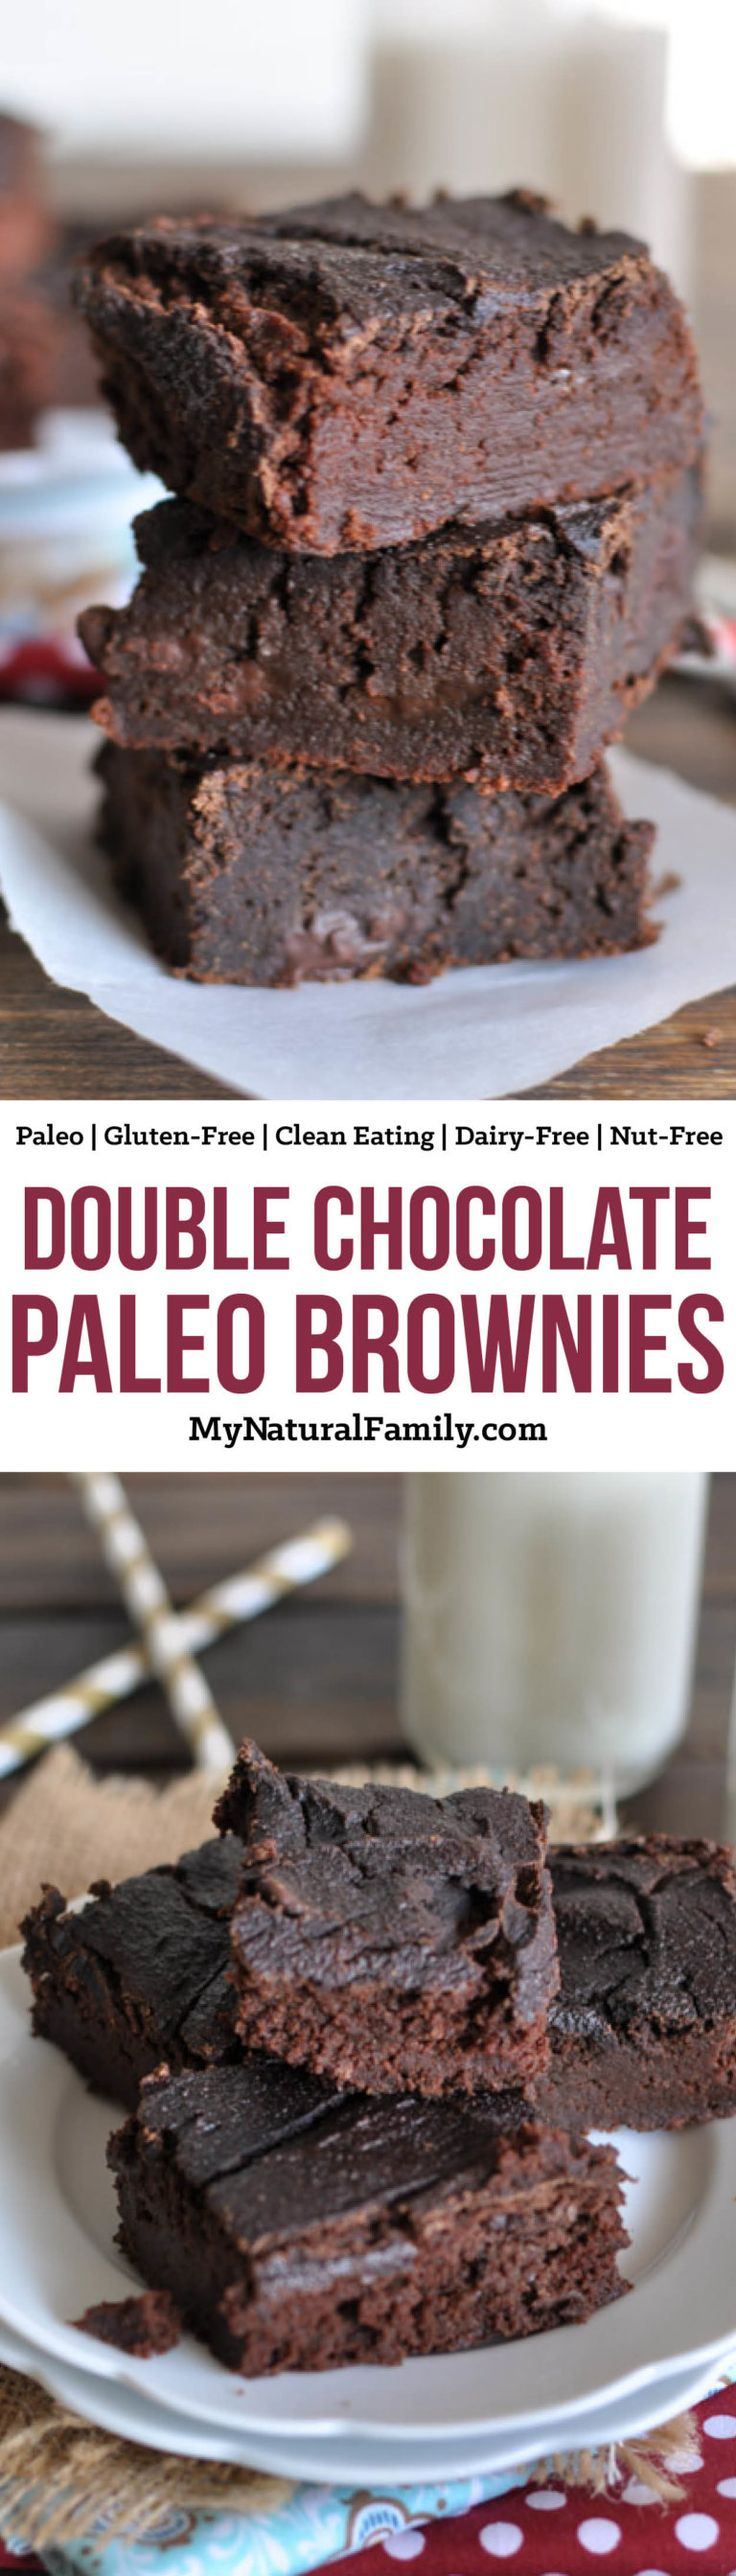 Double Chocolate Paleo Brownies {Nut-Free, Gluten-Free, Clean Eating, Dairy-Free}